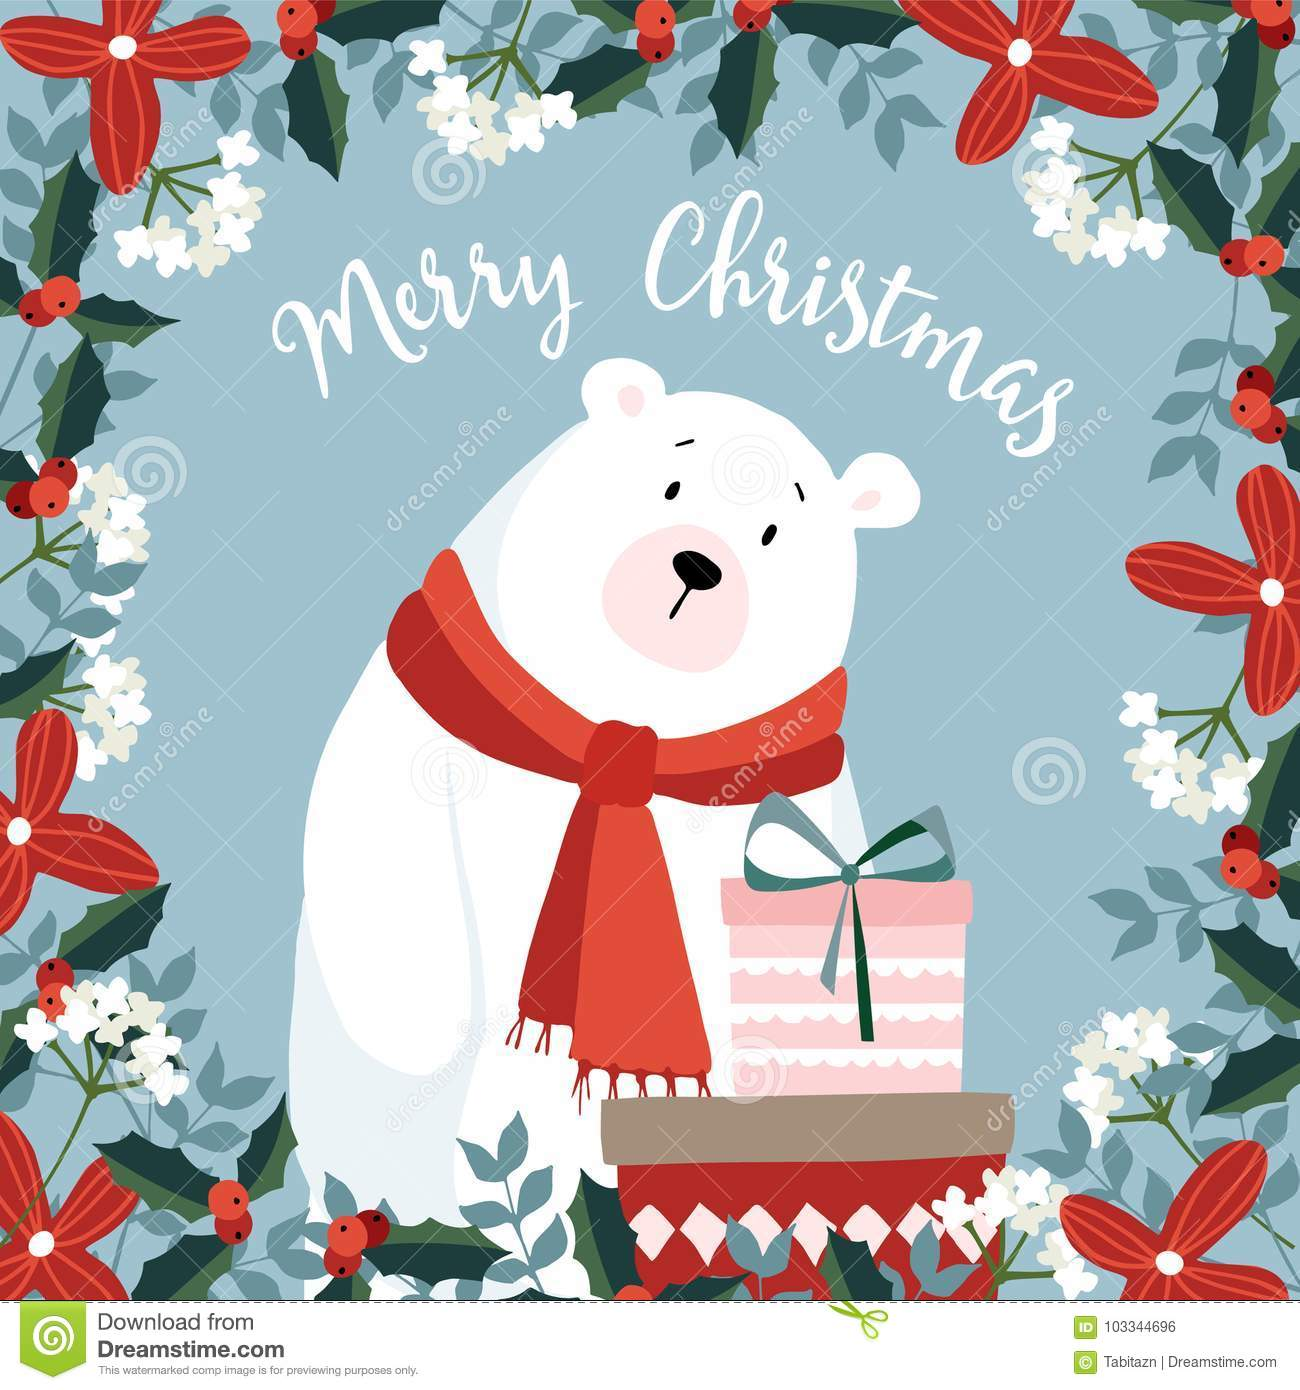 Christmas Wishes Bear.Cute Christmas Greeting Card Invitation With Hand Drawn